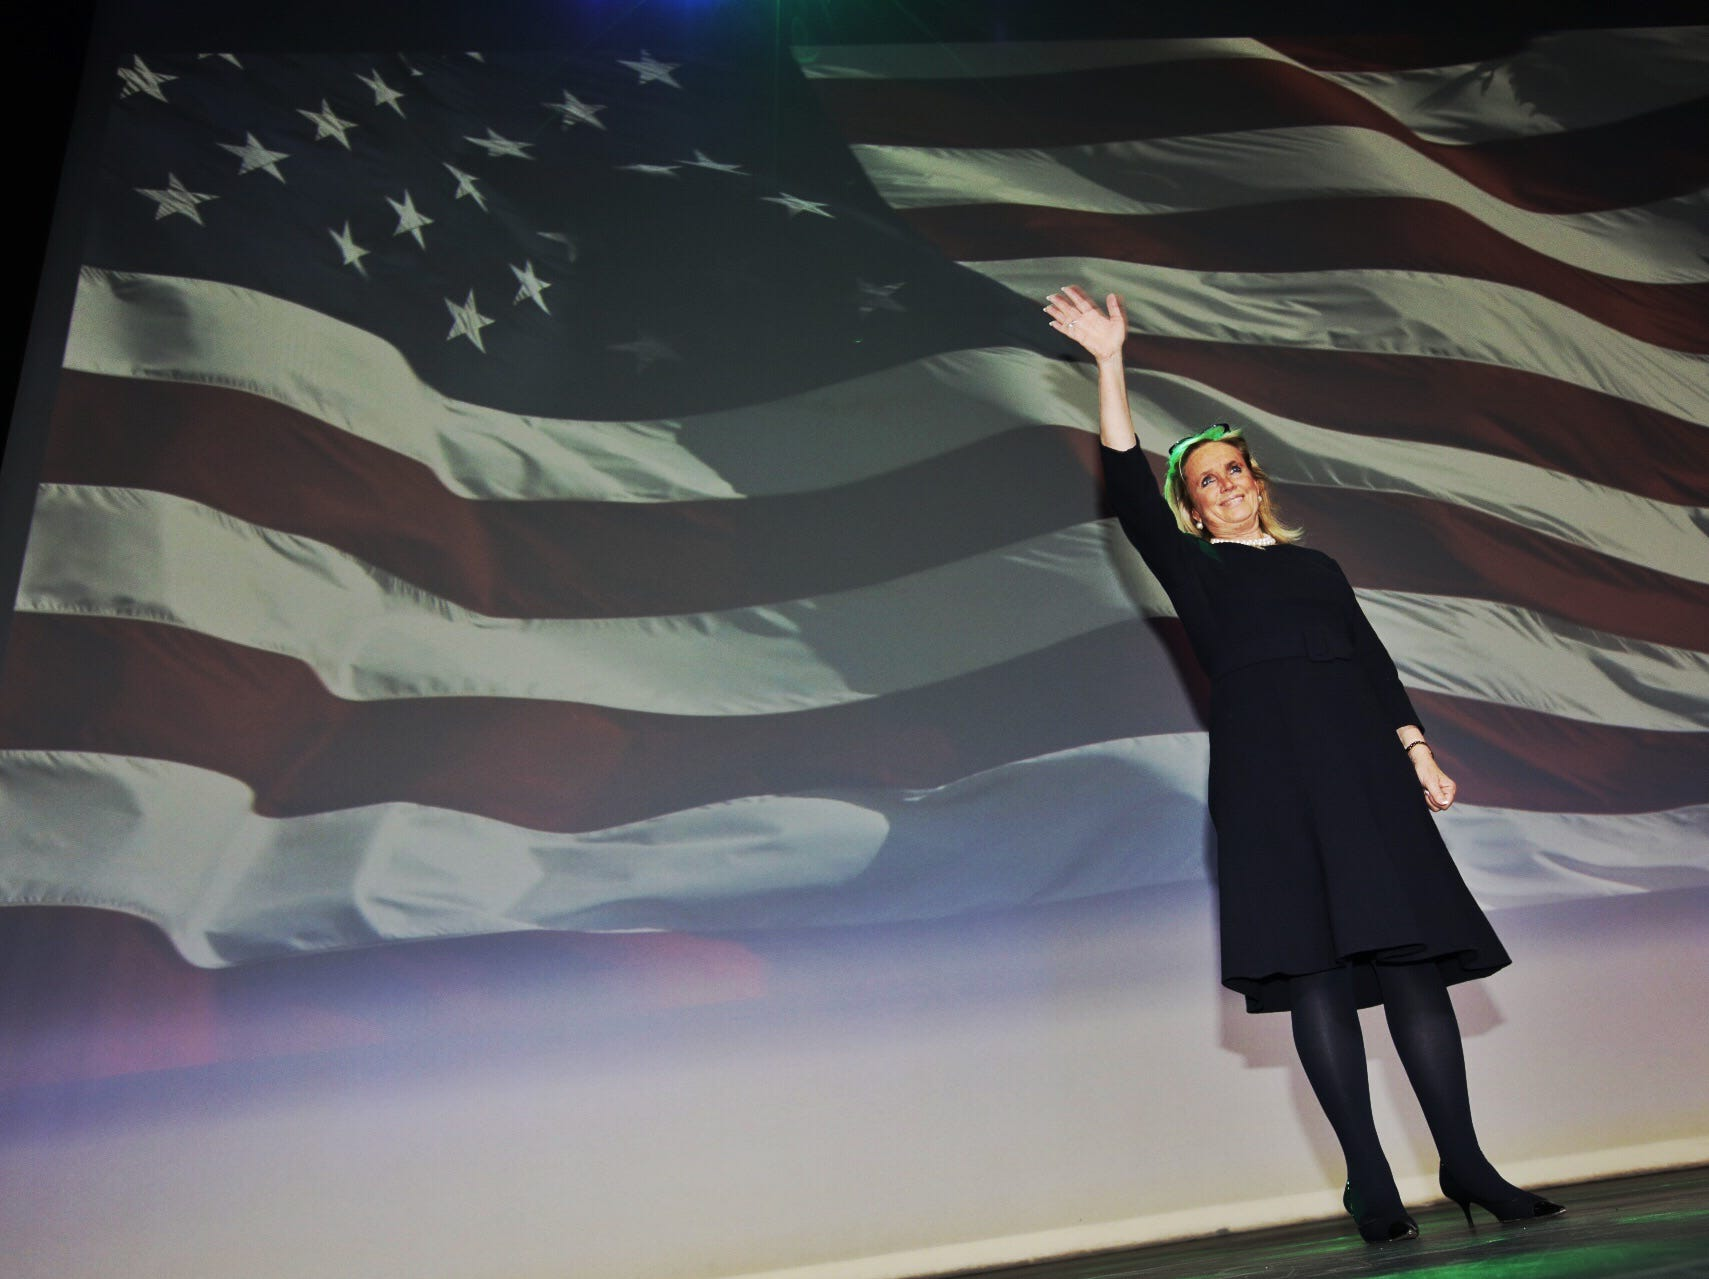 The crowd cheers as Debbie Dingel addresses the crowd during the Democrat's watch party celebration at MotorCity Casino's Sound Board in Detroit on Tuesday, Nov. 6, 2018.